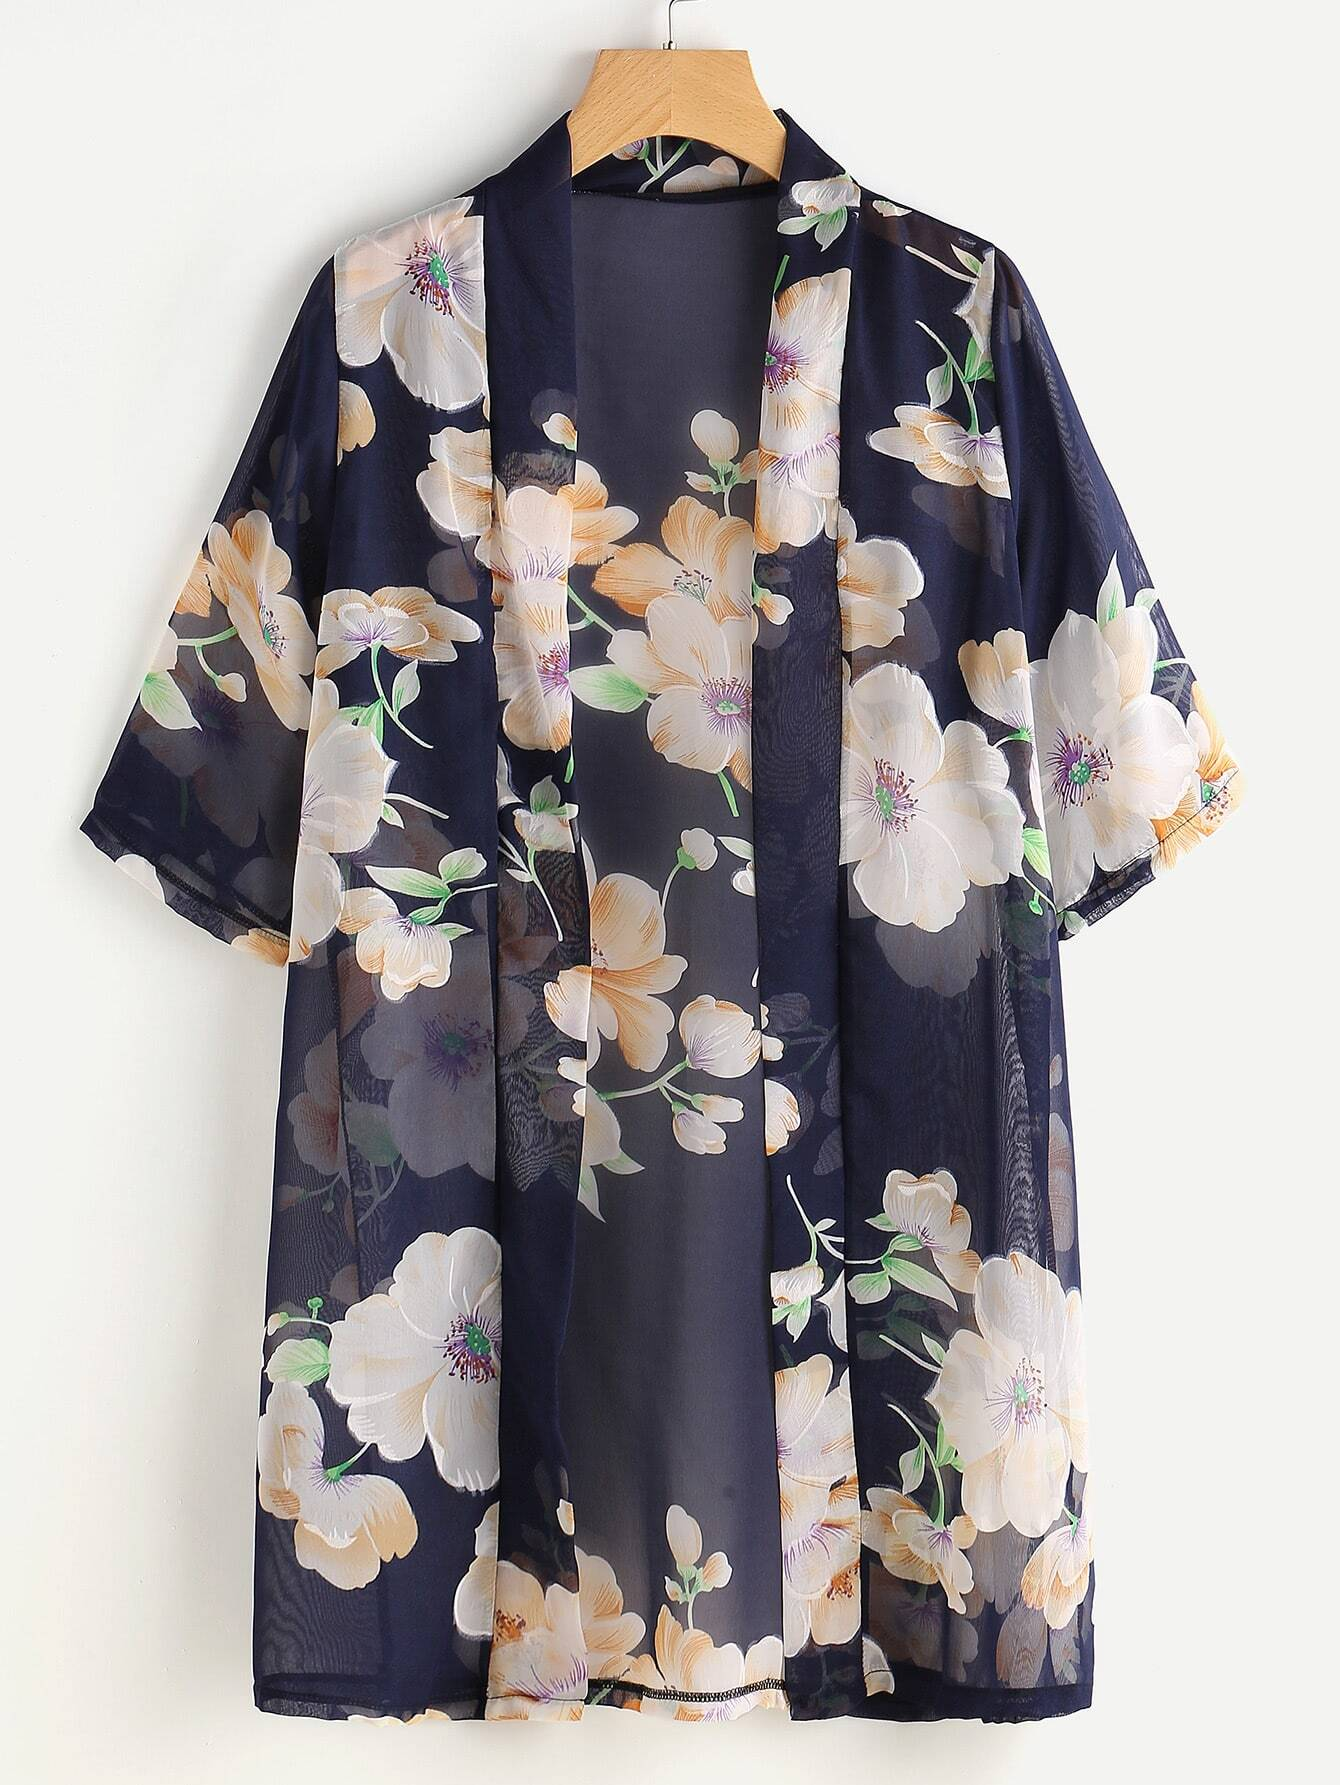 One-of-a-kind vintage Japanese garments (kimono, haori, obi, and other unique wearables), fabric (shibori, yuzen, ikat, and more), and collectables come to .